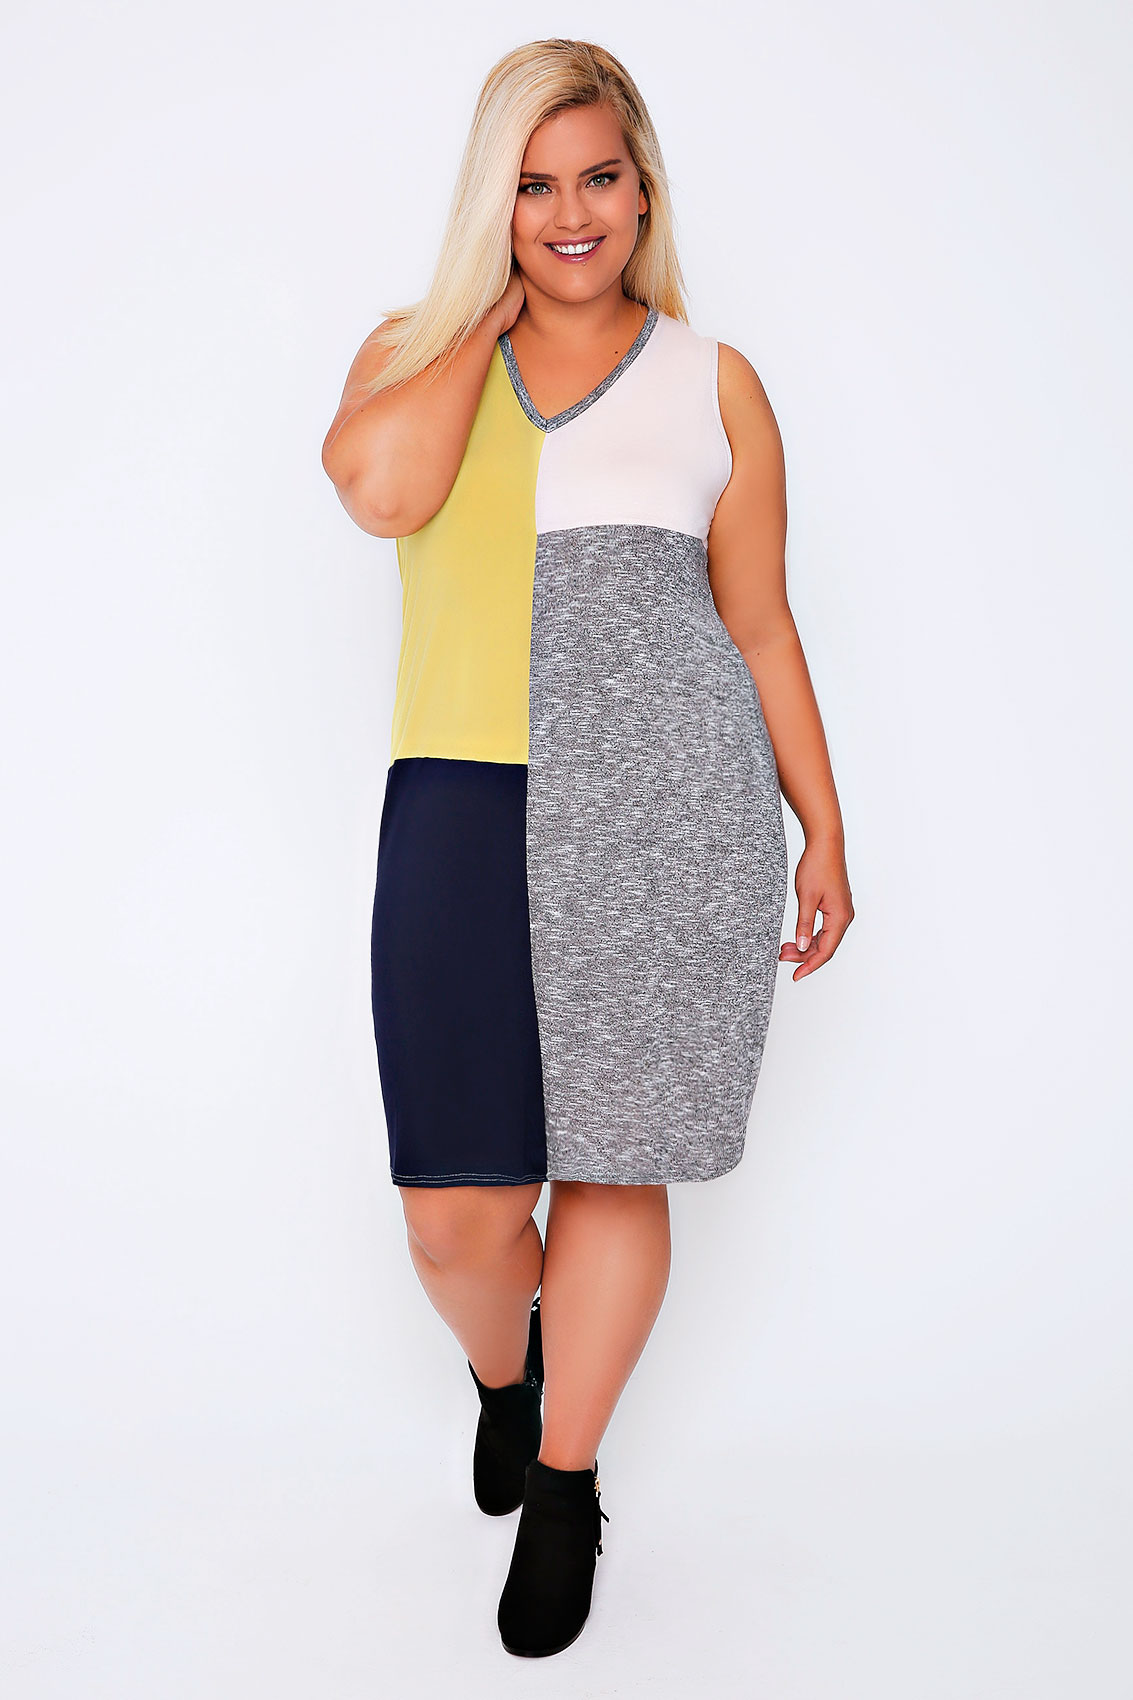 grey marl yellow pink navy colour block sleeveless shift dress plus size 16 18 20 22 24 26 28 3. Black Bedroom Furniture Sets. Home Design Ideas